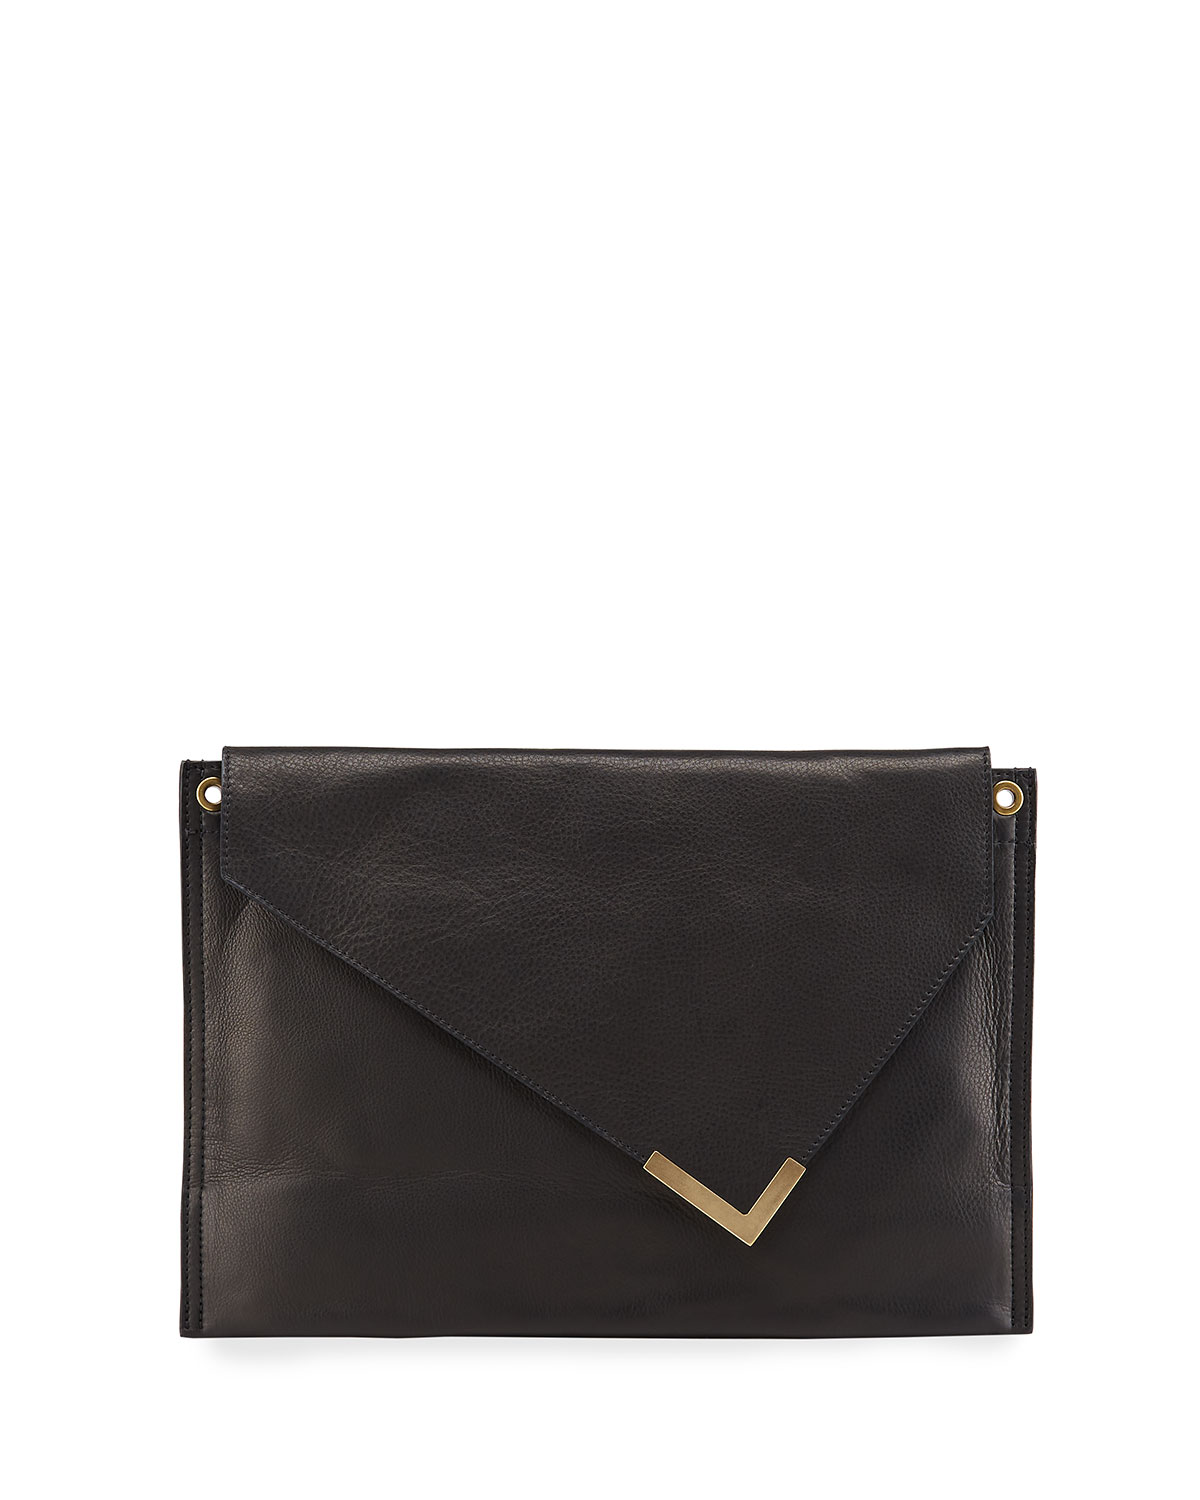 Isabel Marant TRYNE LEATHER CROSSBODY CLUTCH BAG